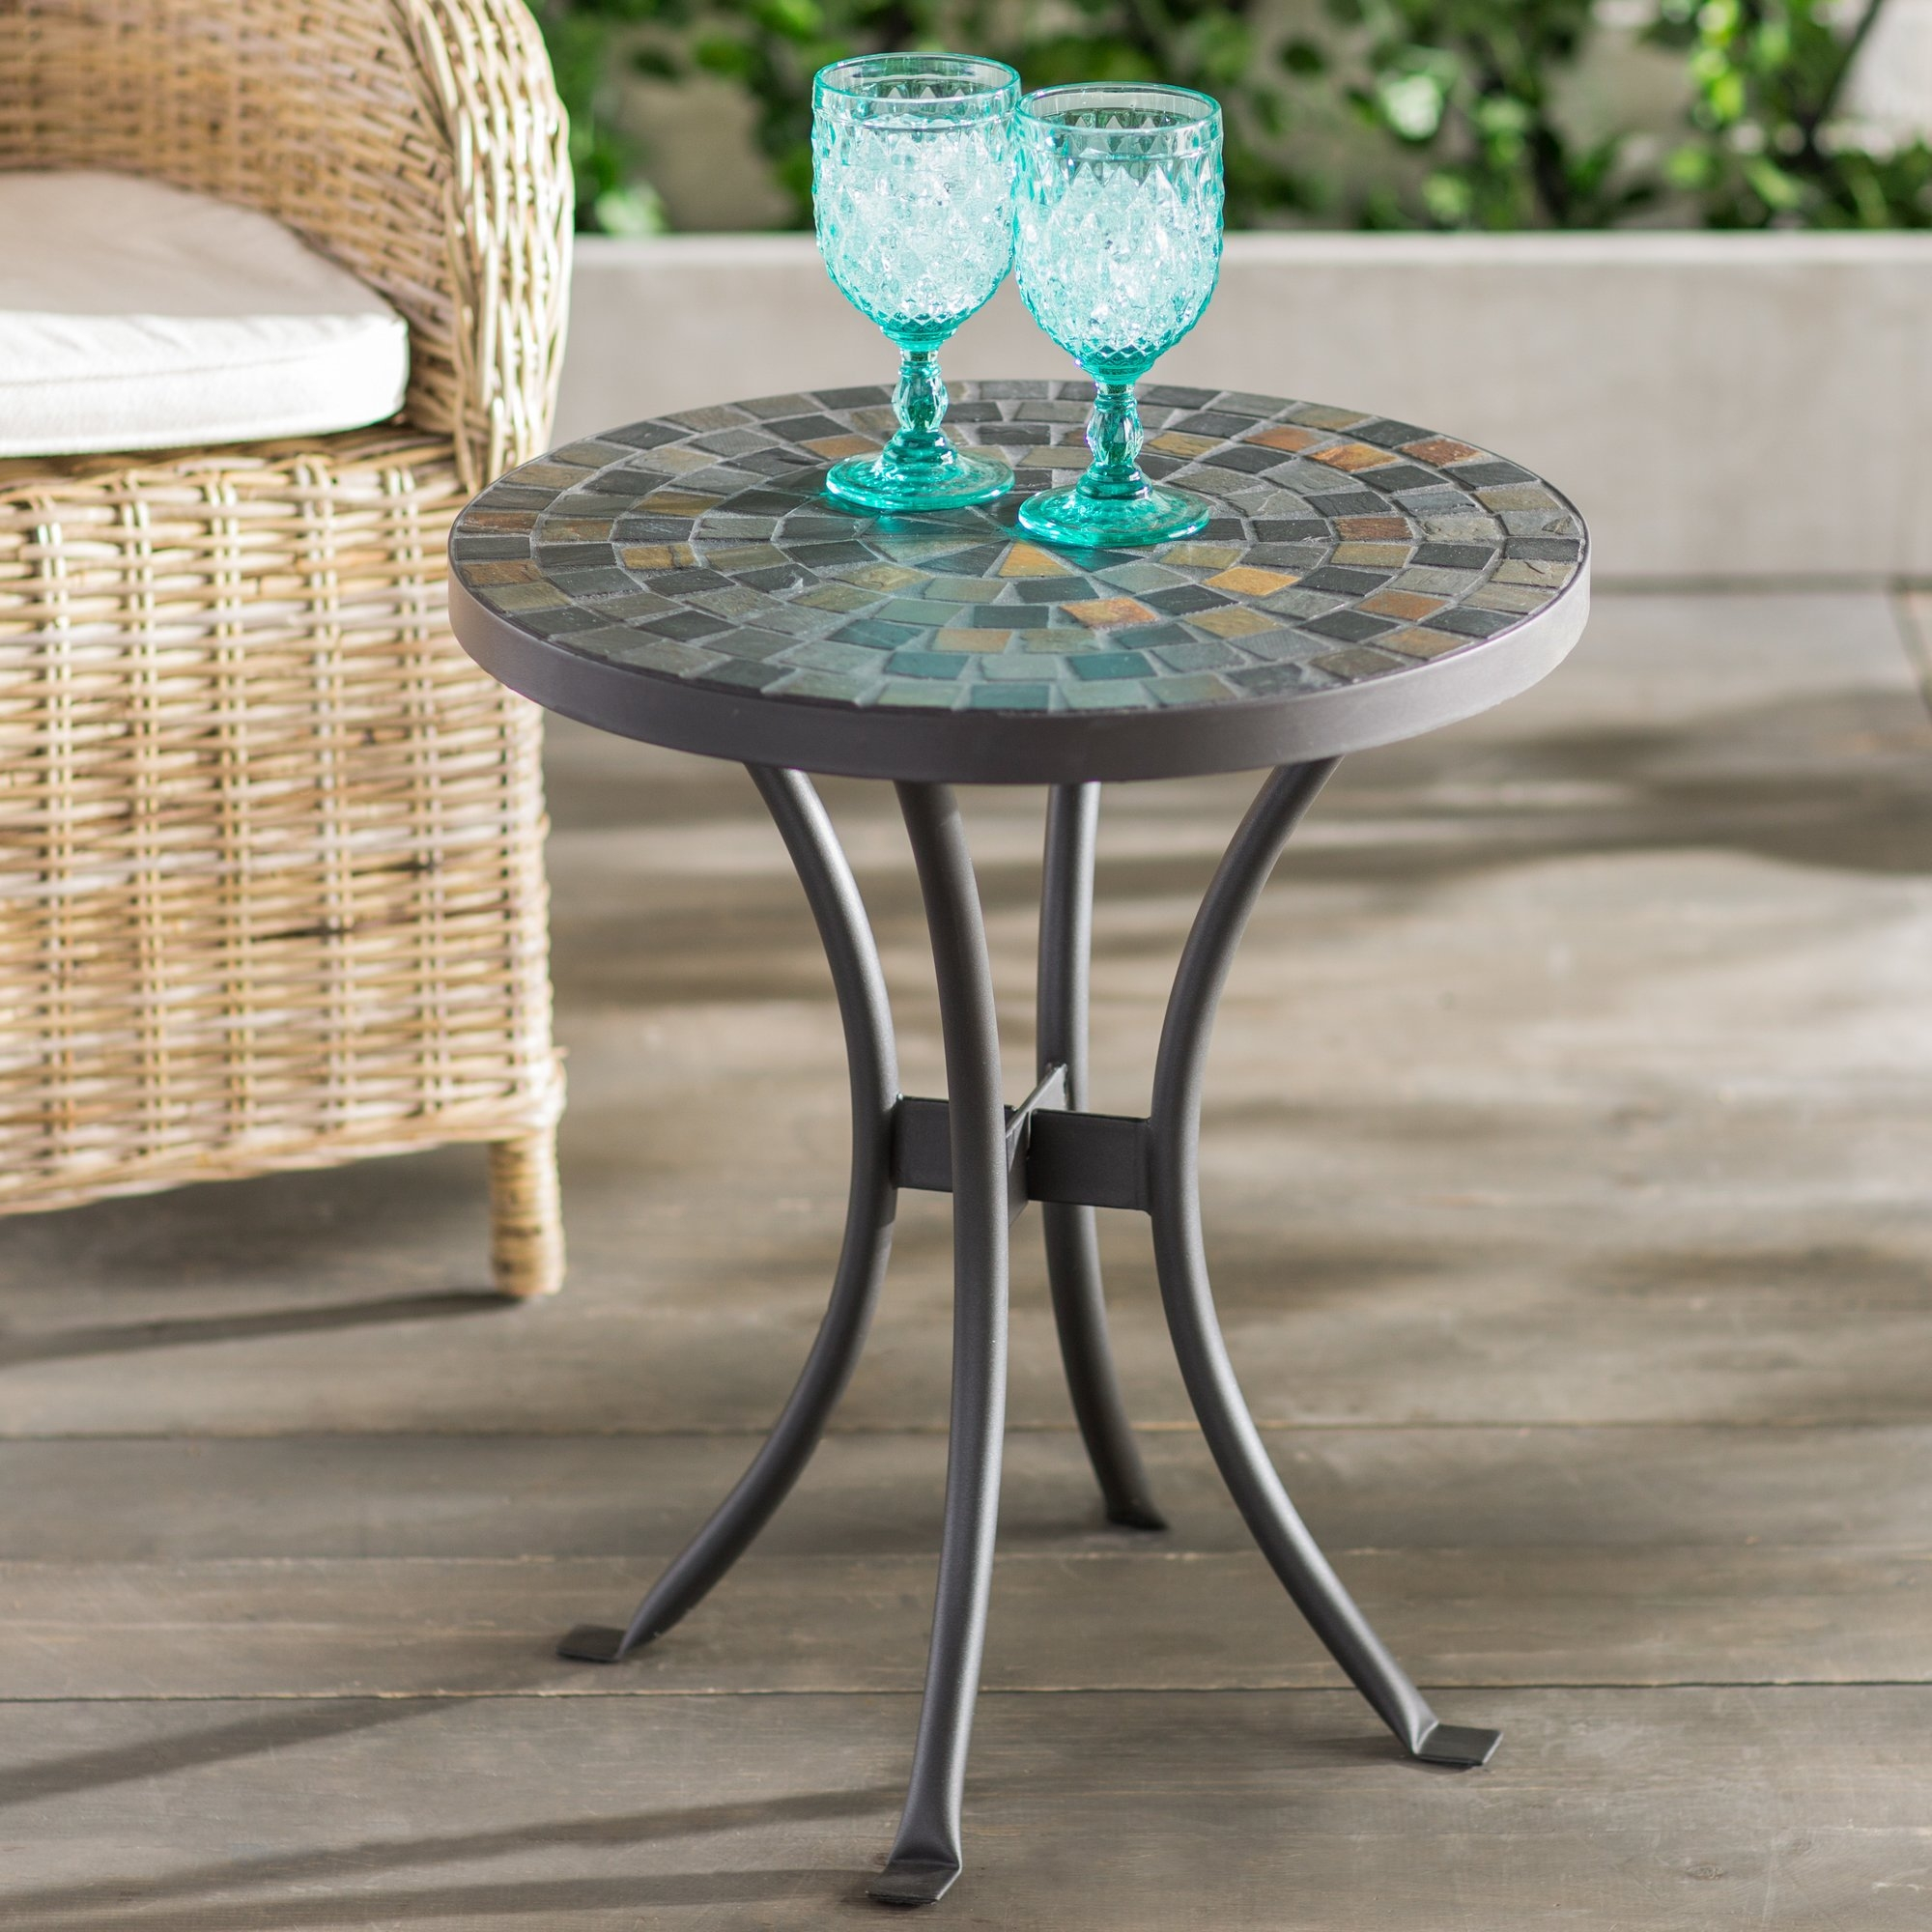 mosaic accent table outdoor design ideas brie side beachcrest home res threshold round coffee tables for small patio drink decoration piece rugs apothecary chest tiffany stained